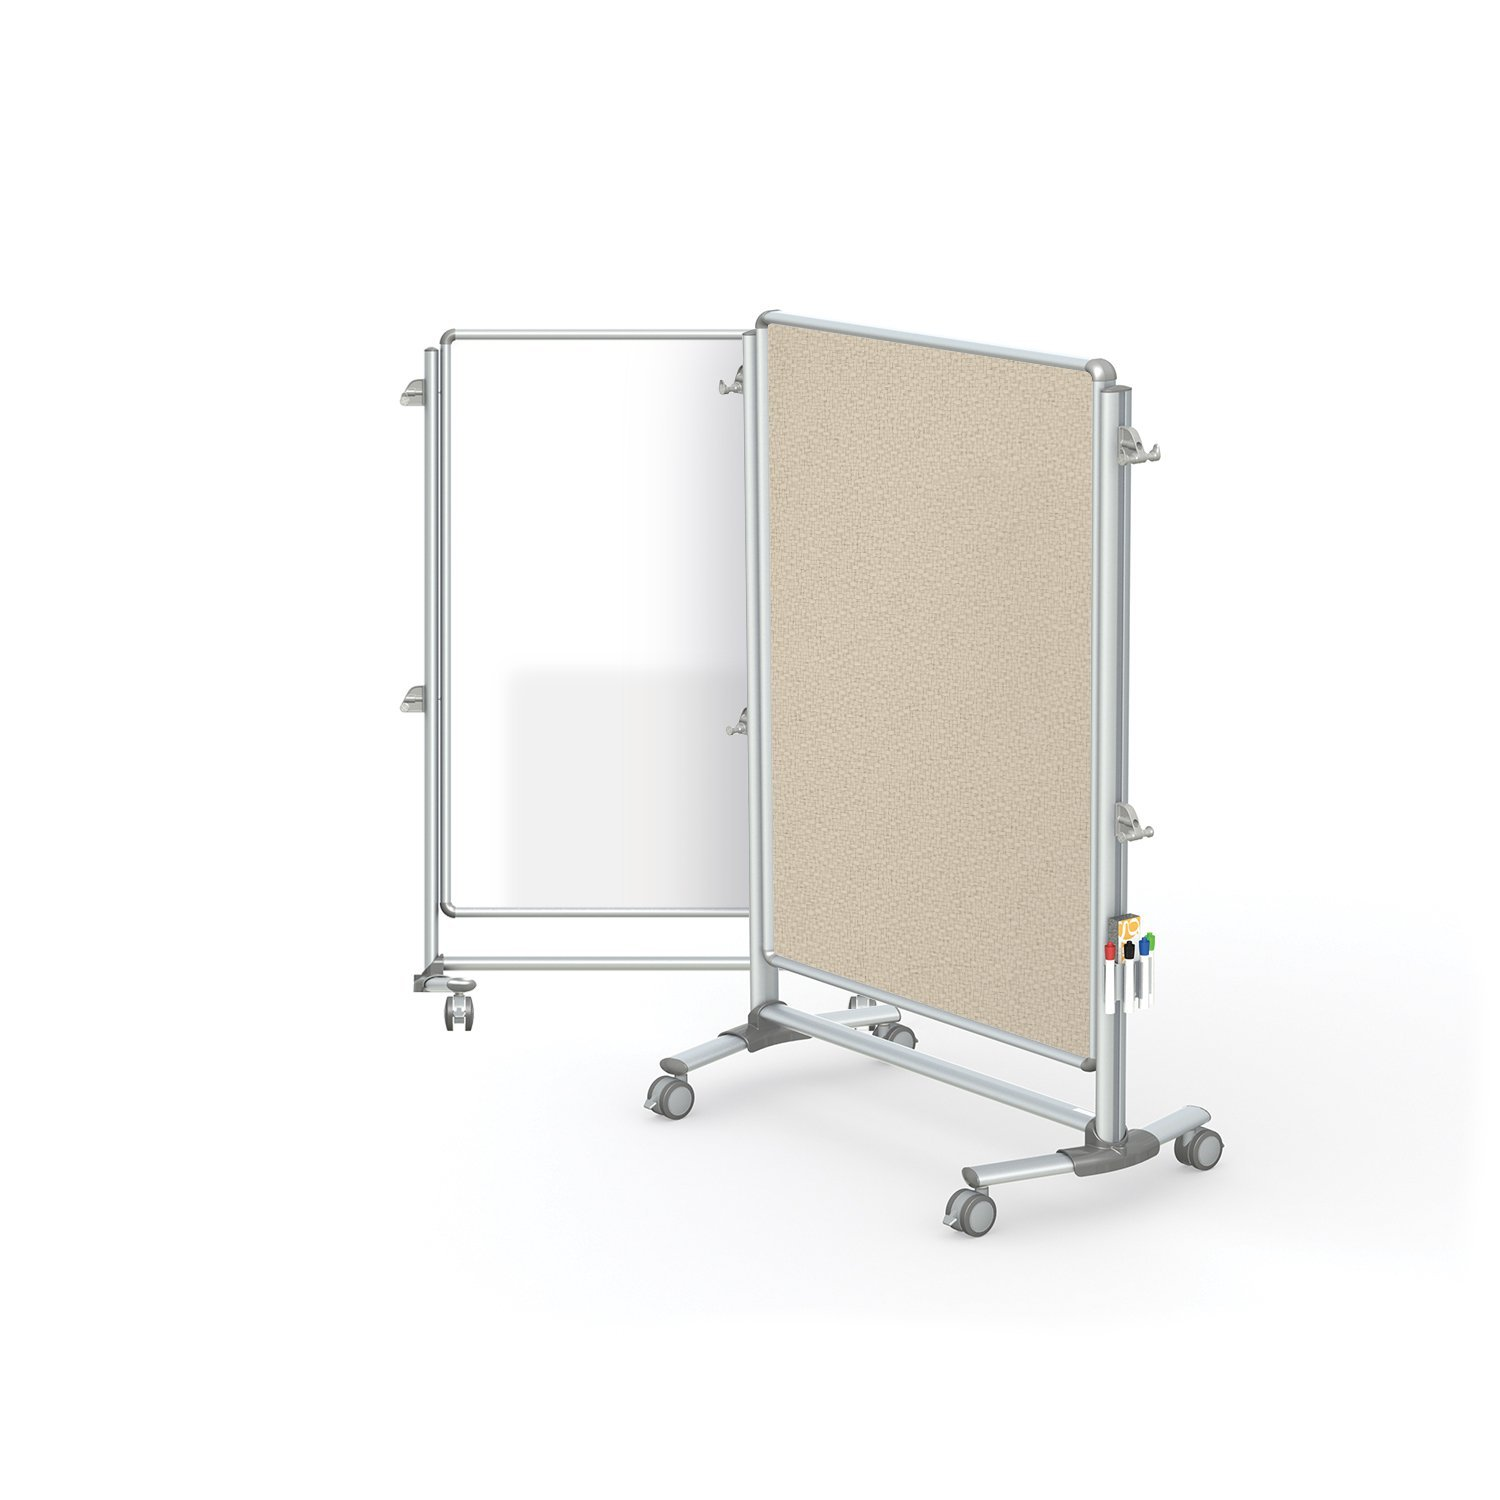 "Ghent 57-3/8"" x 40-3/8"" Nexus Jr. Partition, Magnetic Whiteboard/Bulletin Board, Double-Sided (NEX223MFP-90)"